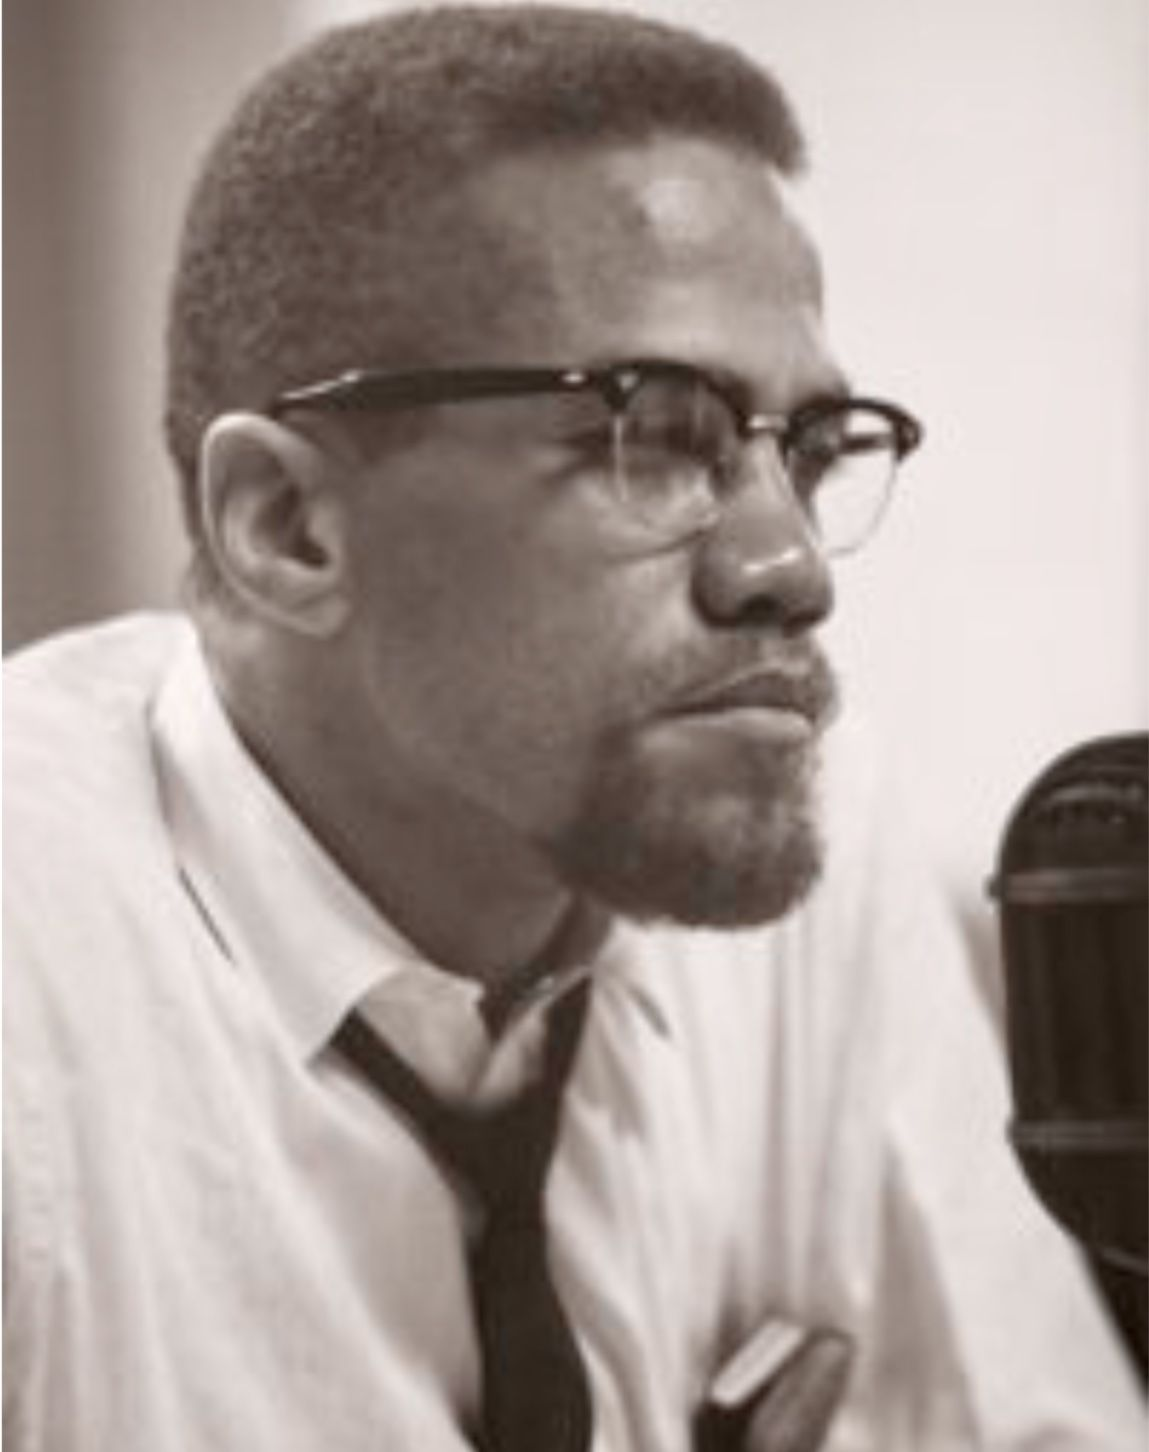 Pin By Eugene Sims Ii On Presenting The Life And Times Of Brother Malcolm Malcolm Little Detroit Red Malcolm X El Hajj Malik El Shabazz Omawale Mr And Mrs Malcol Celebrate Black History Black History Facts